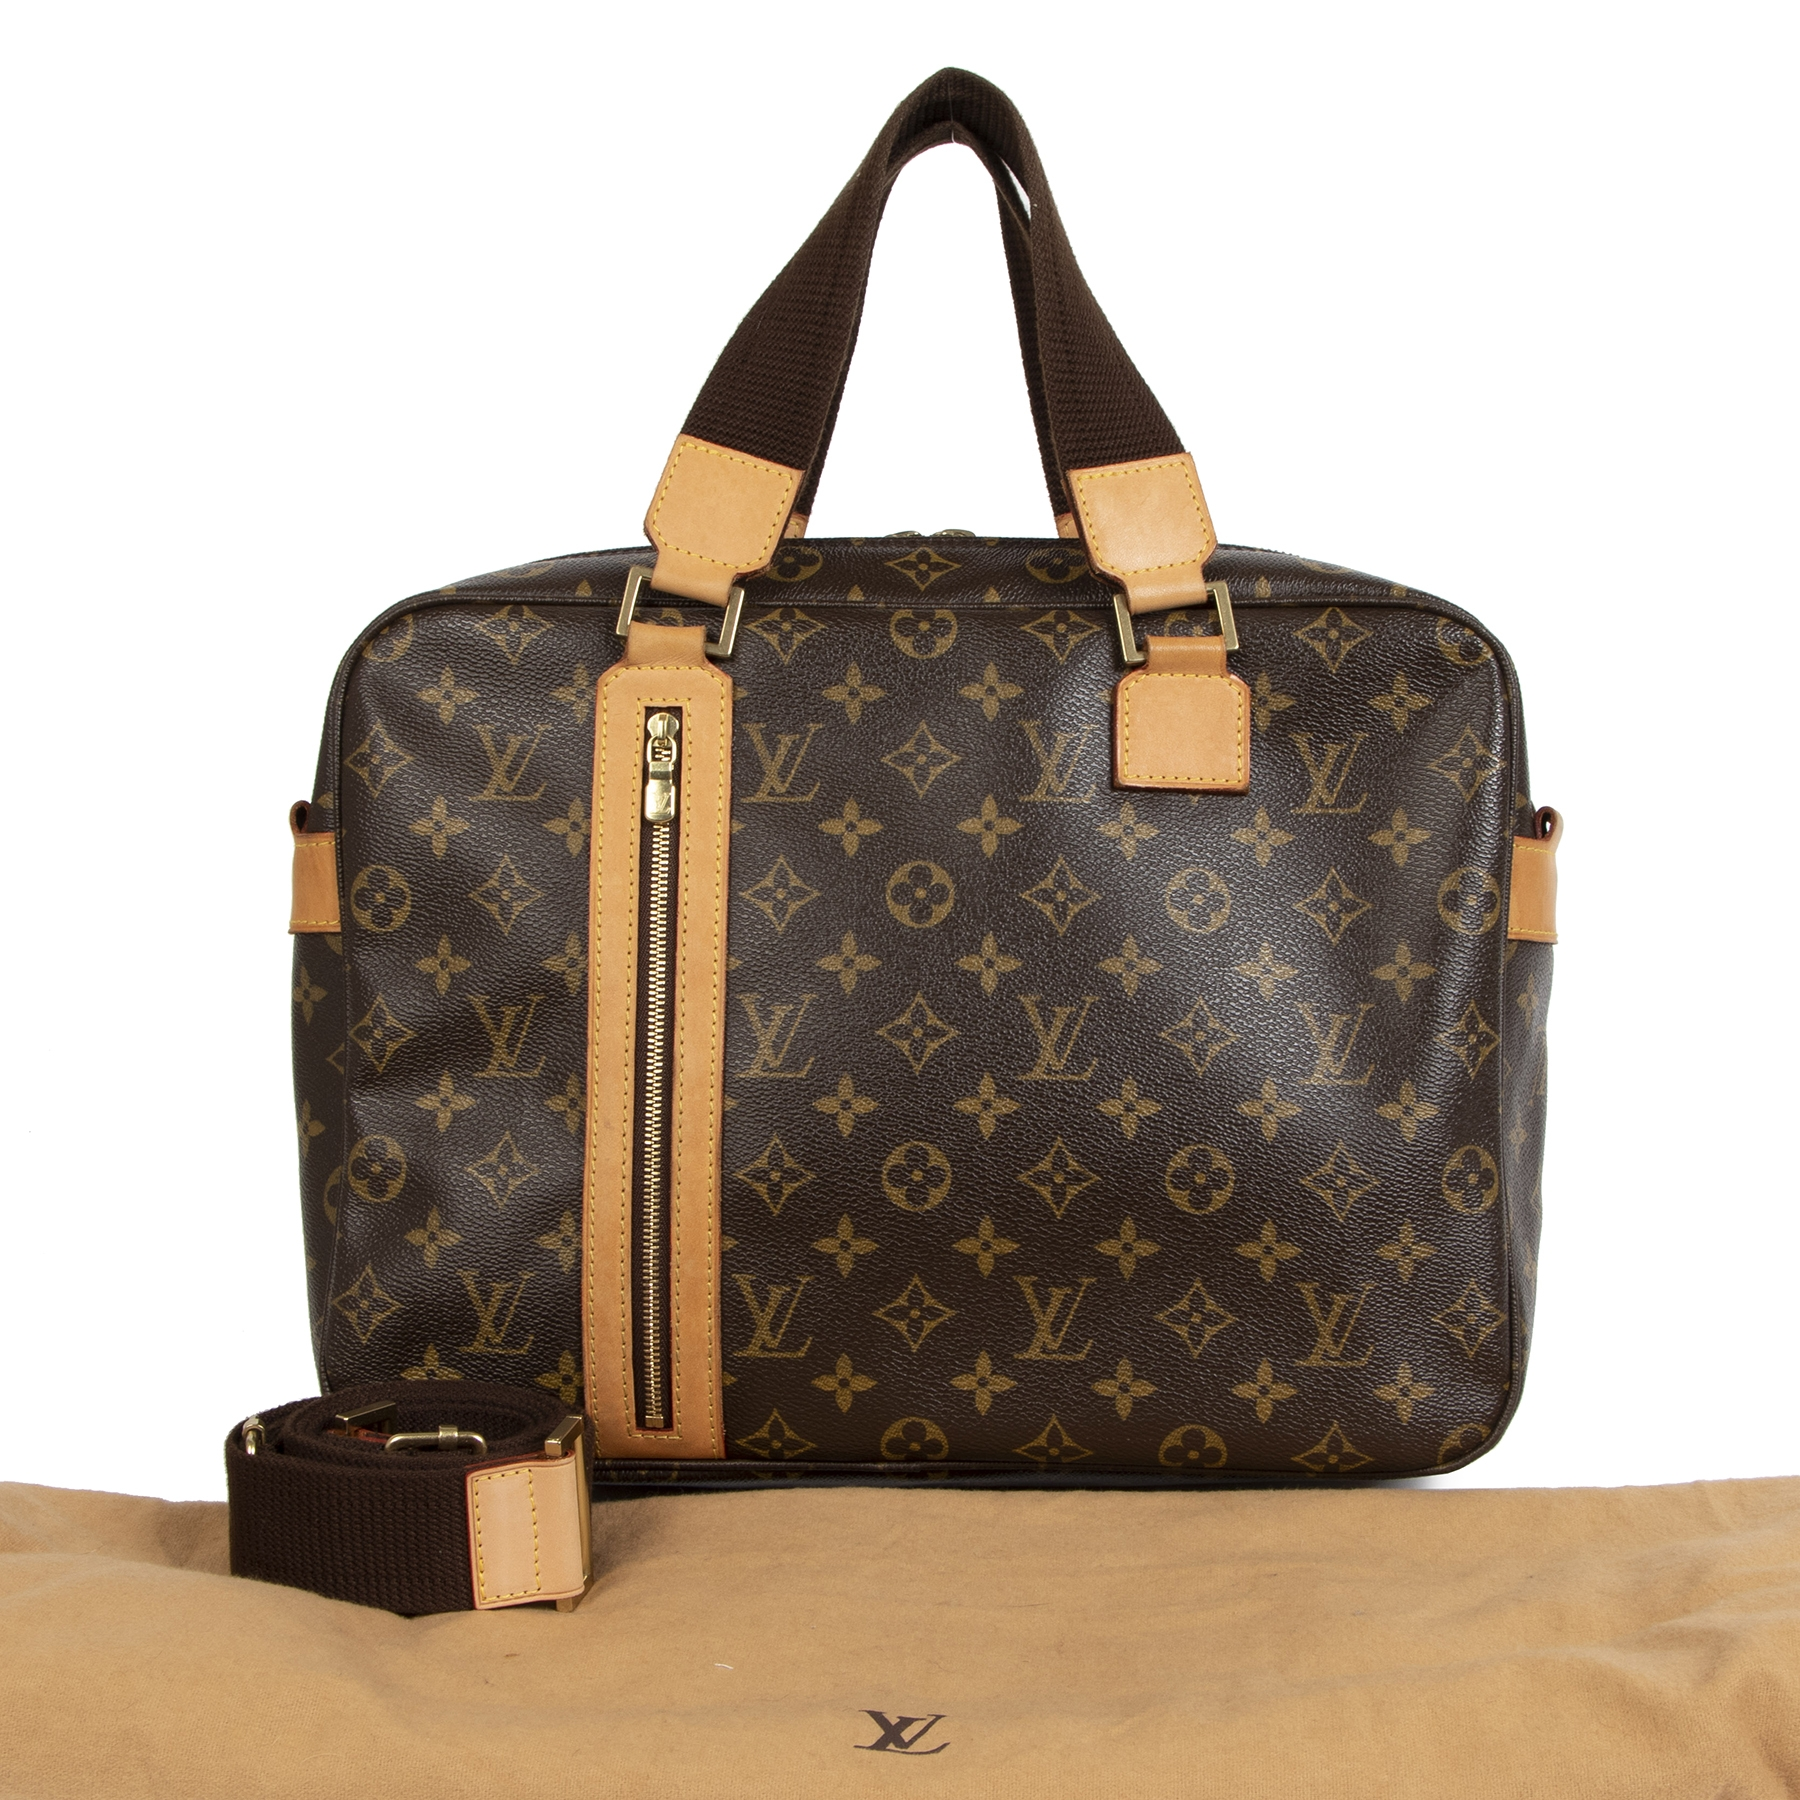 Authentieke tweedehands vintage Louis Vuitton Monogram Bosphore Messenger Bag koop online webshop LabelLOV